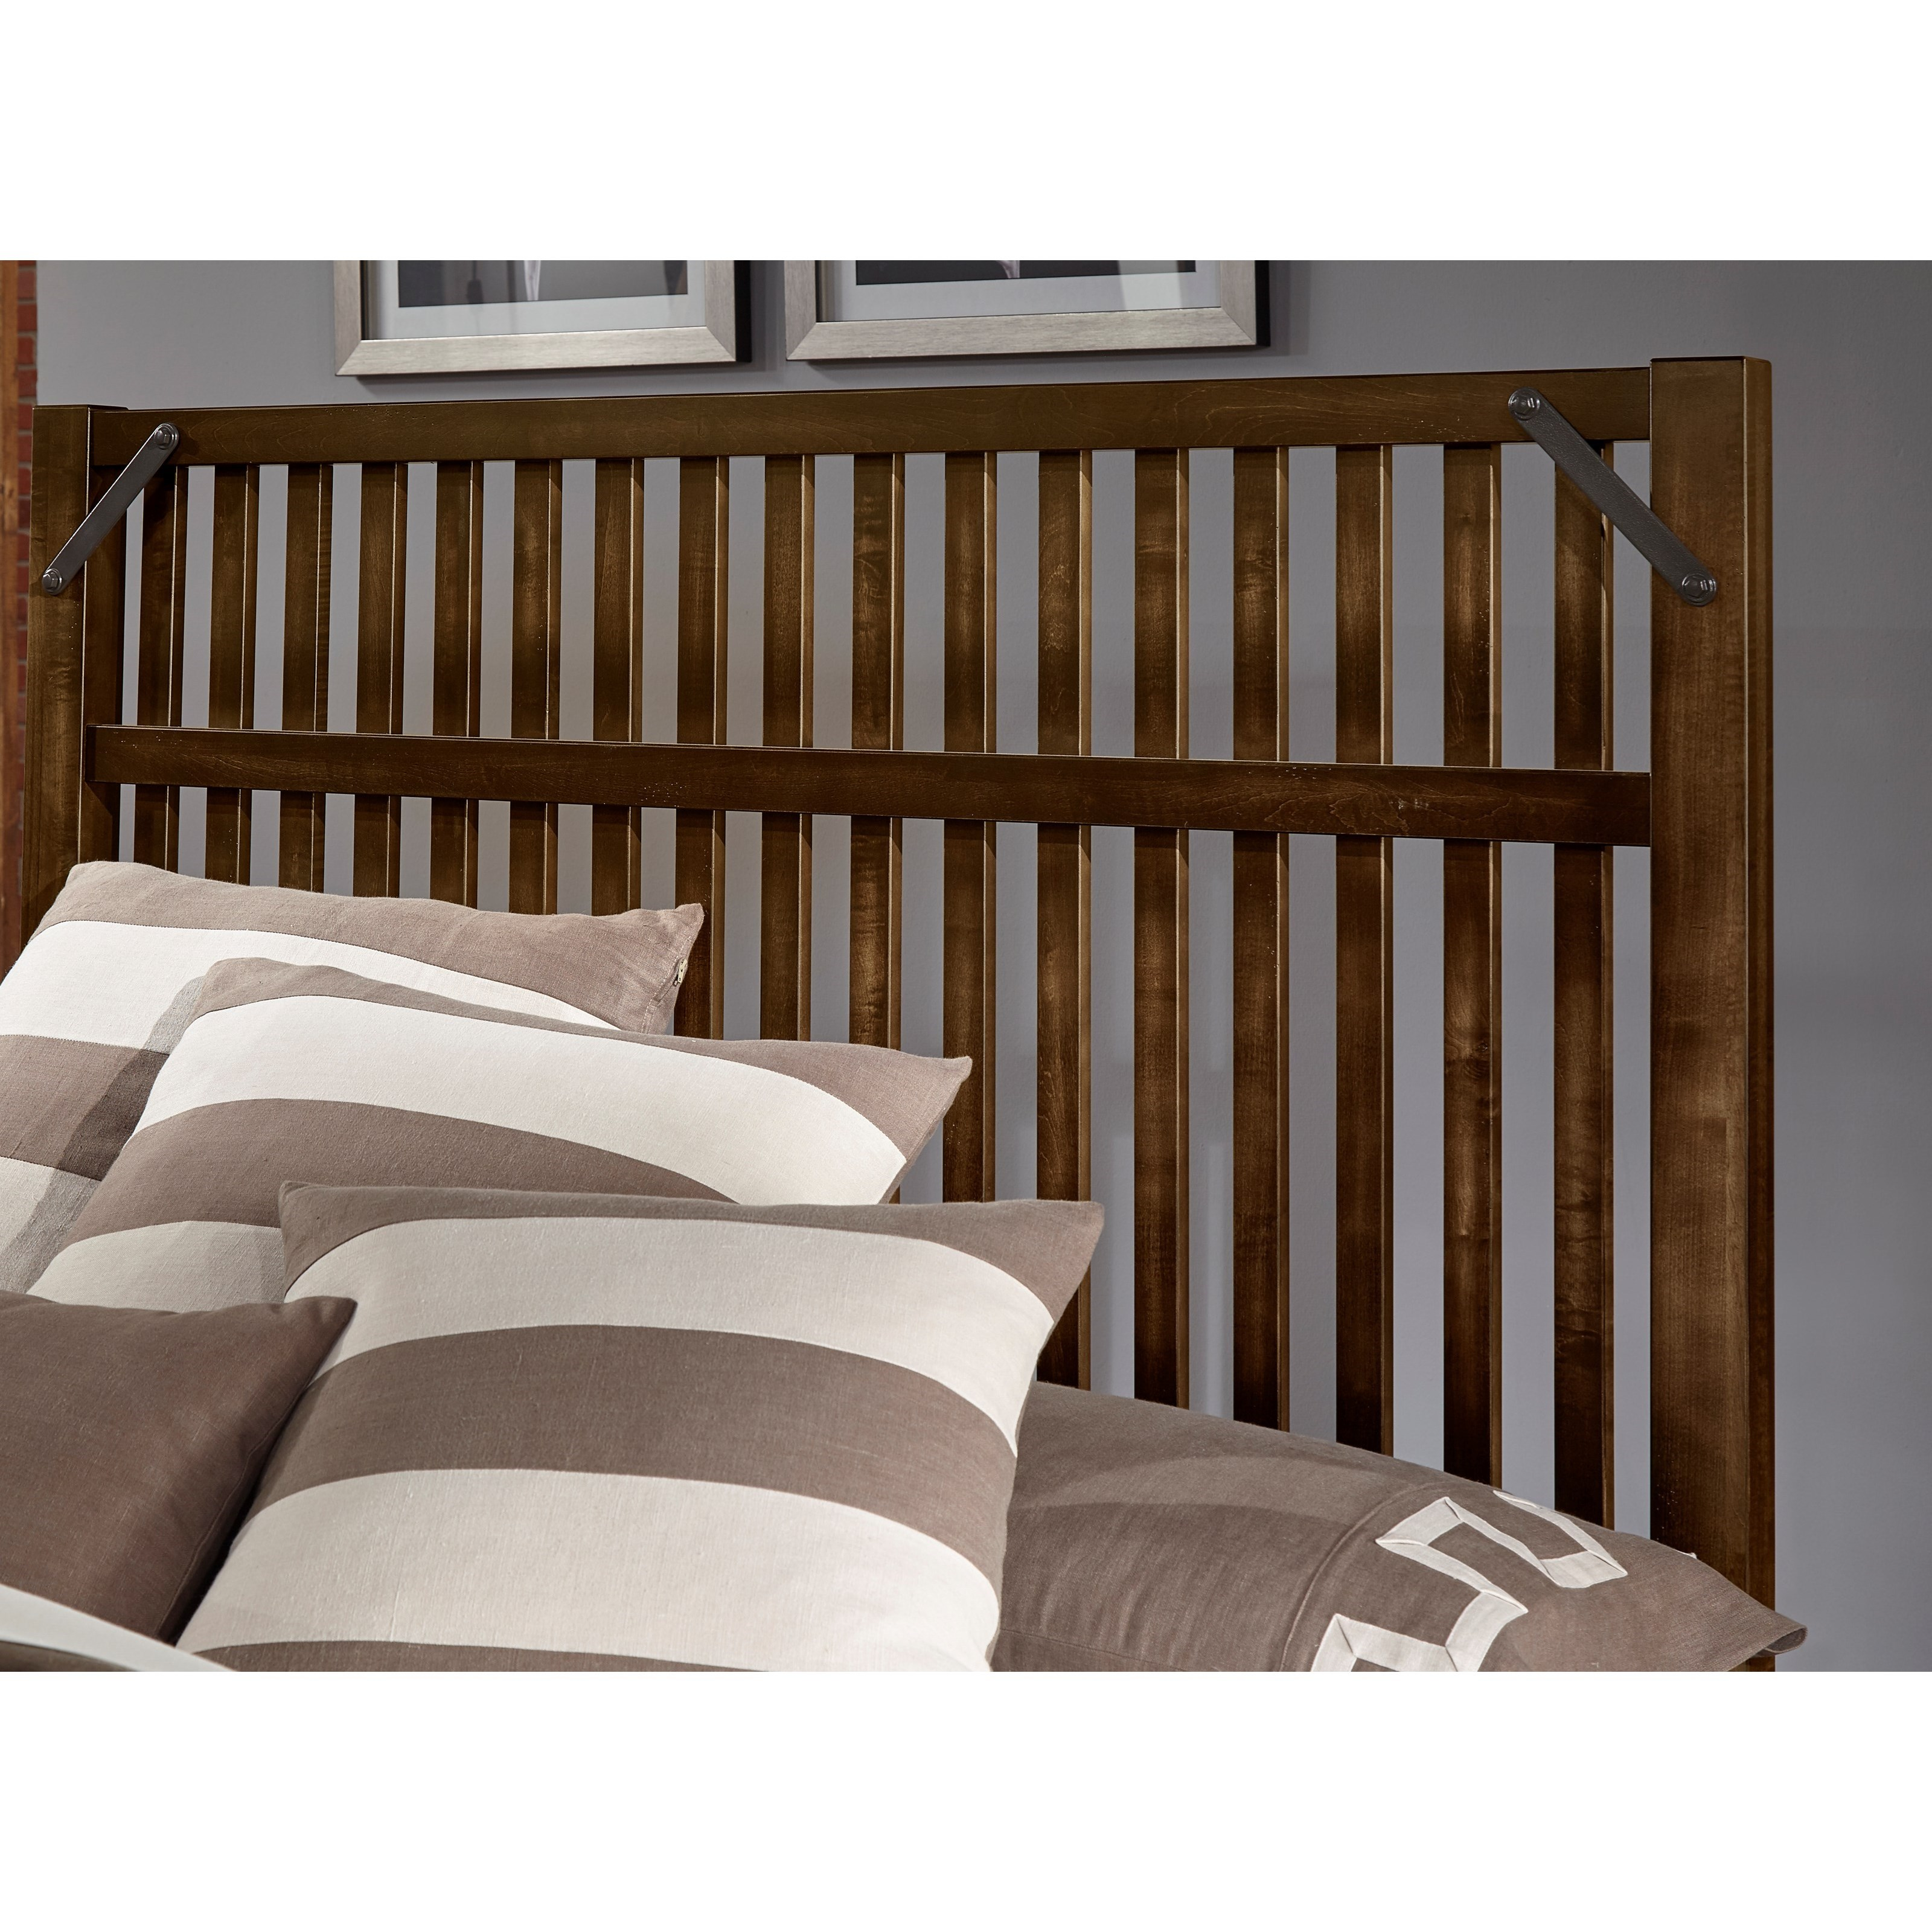 Artisan Amp Post Sedgwick Rustic Queen Slat Headboard With Metal Accents Wayside Furniture